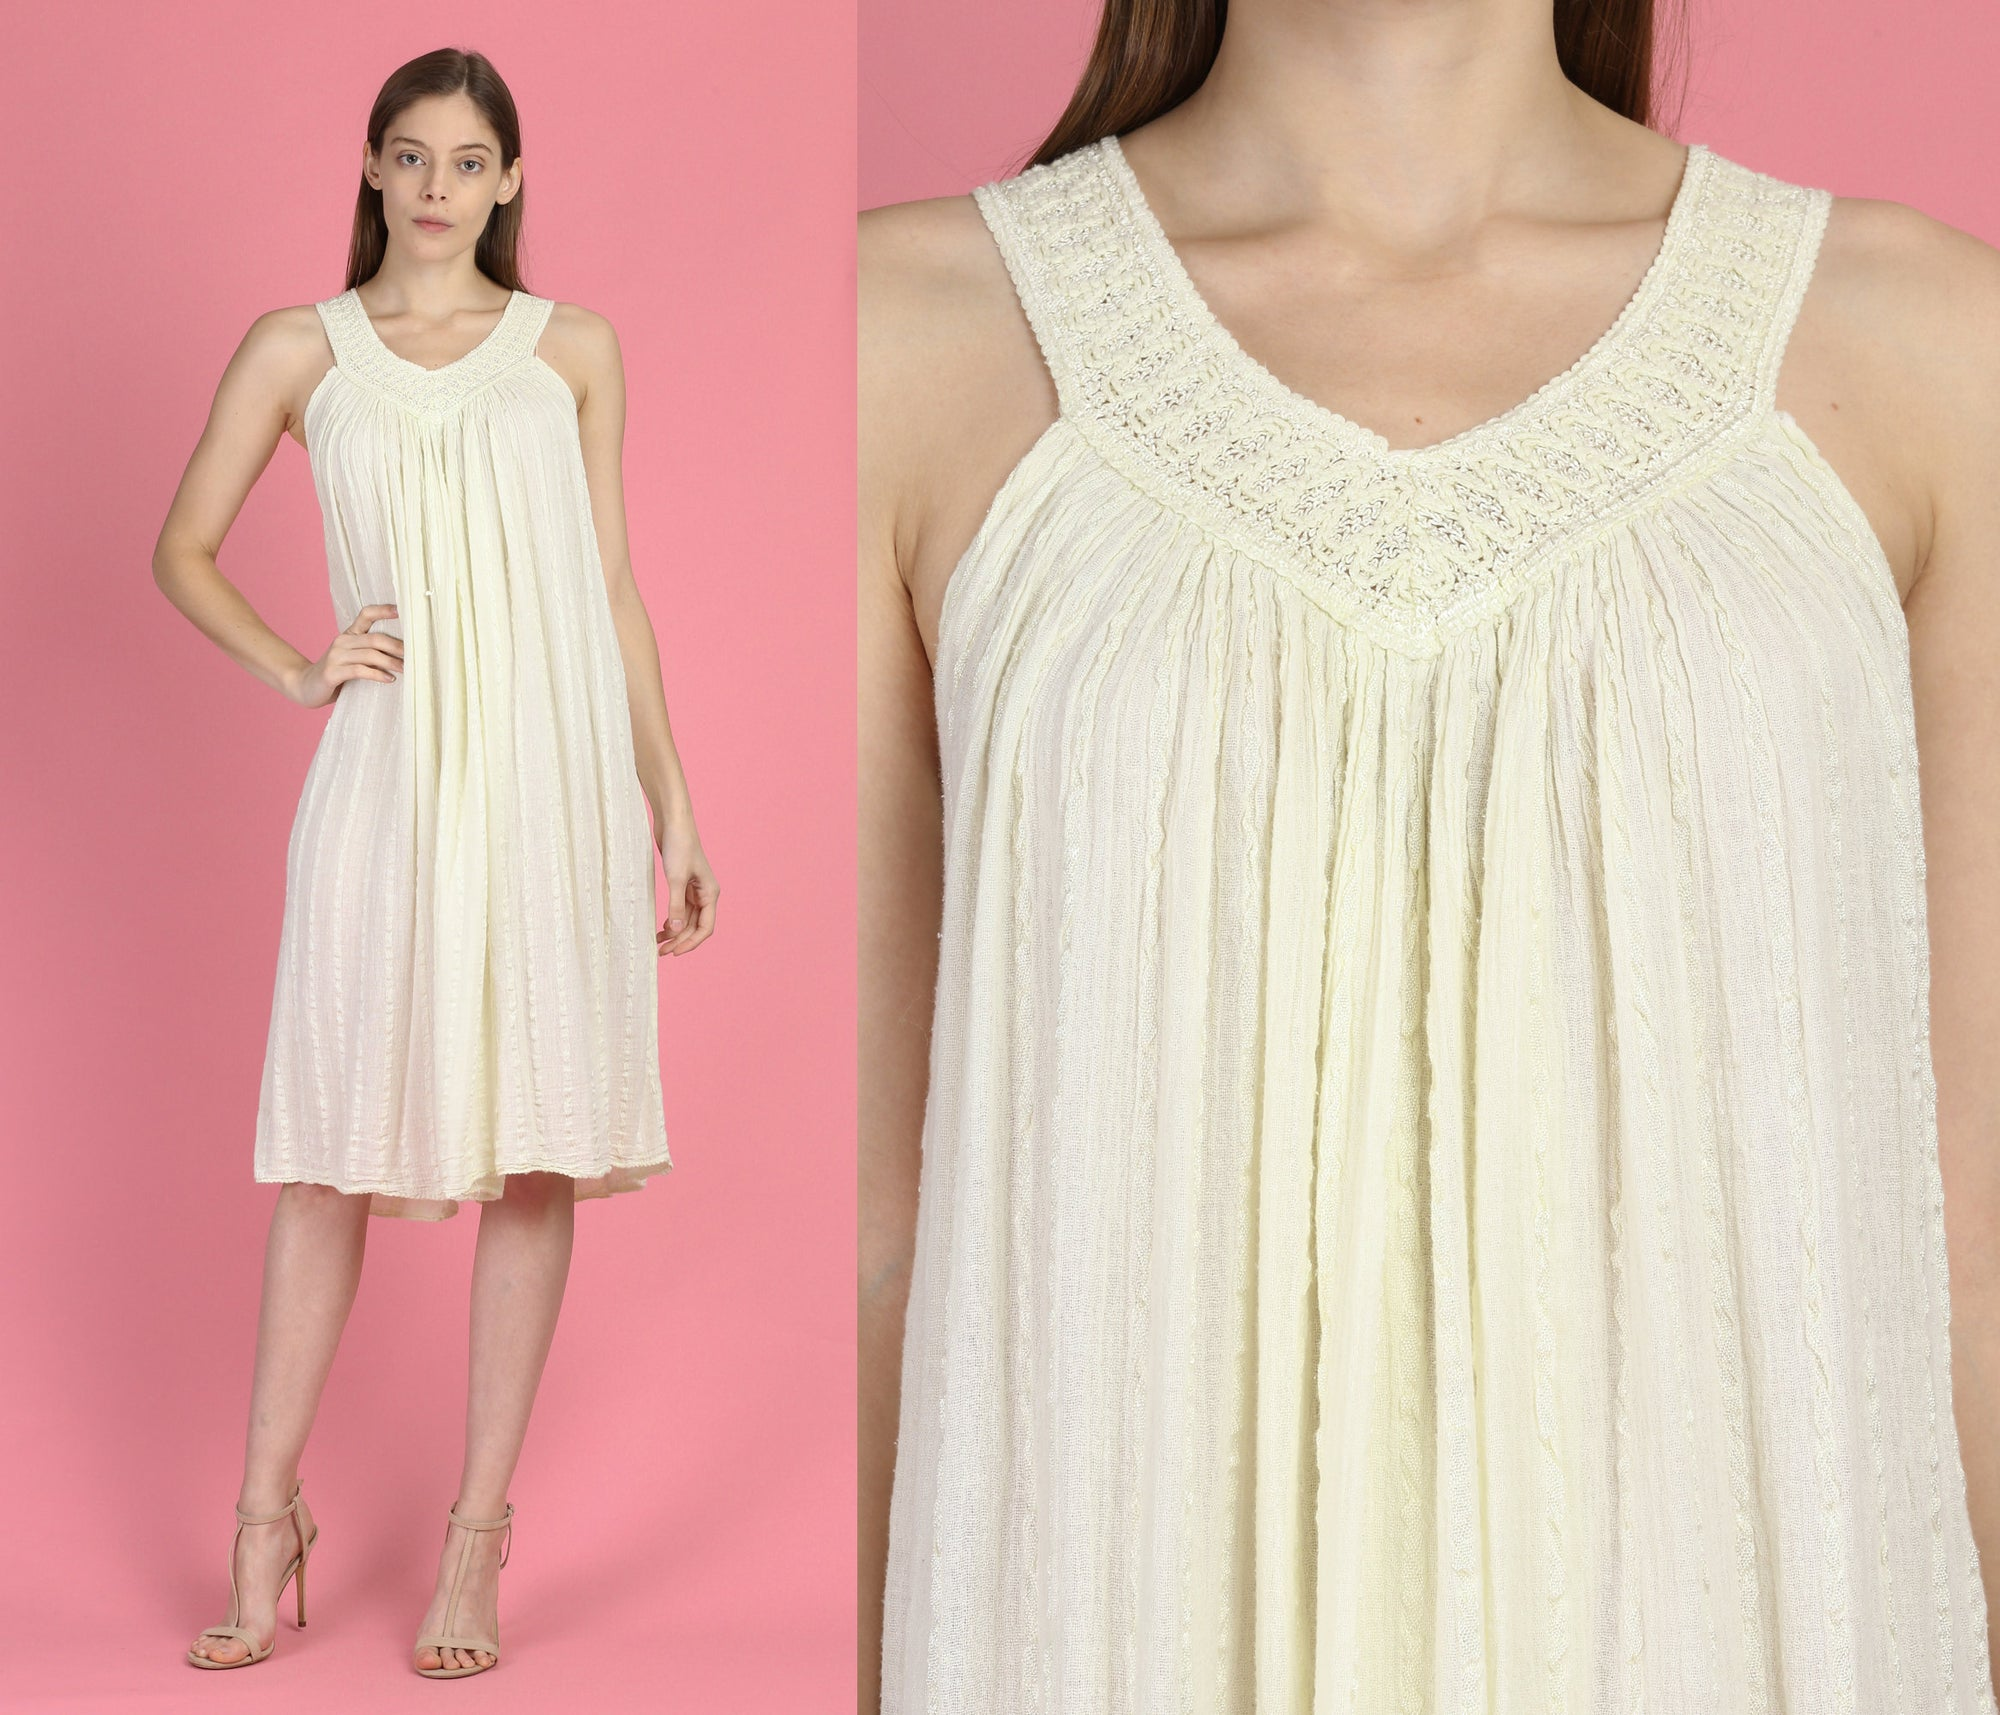 70s Grecian Gauze Dress - One Size